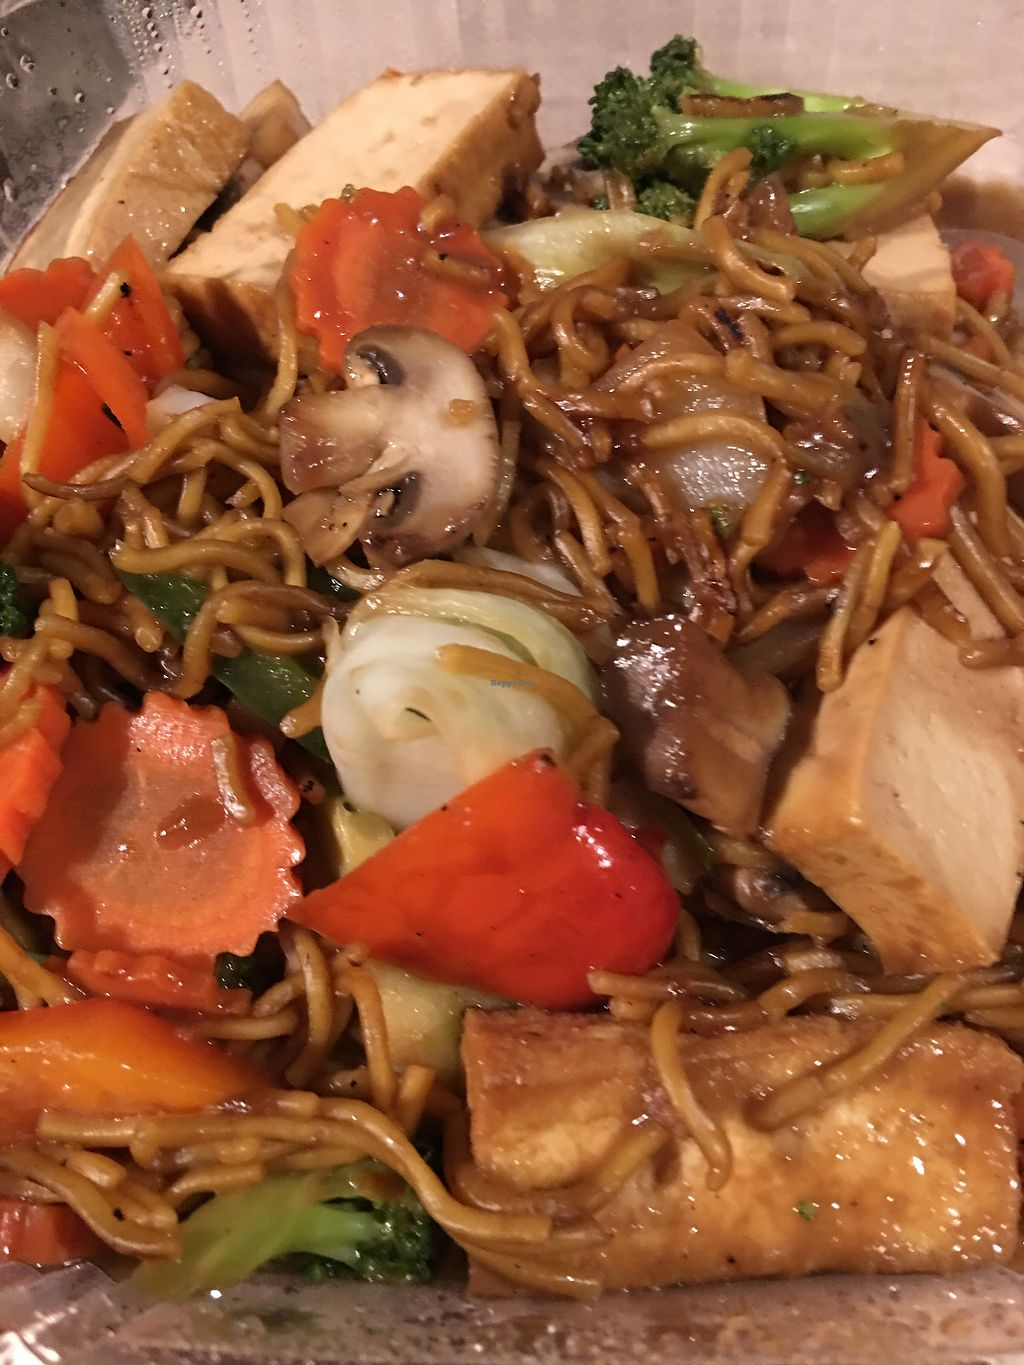 """Photo of Pac Thai  by <a href=""""/members/profile/Jenf"""">Jenf</a> <br/>Vegan yakisoba  <br/> December 22, 2017  - <a href='/contact/abuse/image/102499/337924'>Report</a>"""